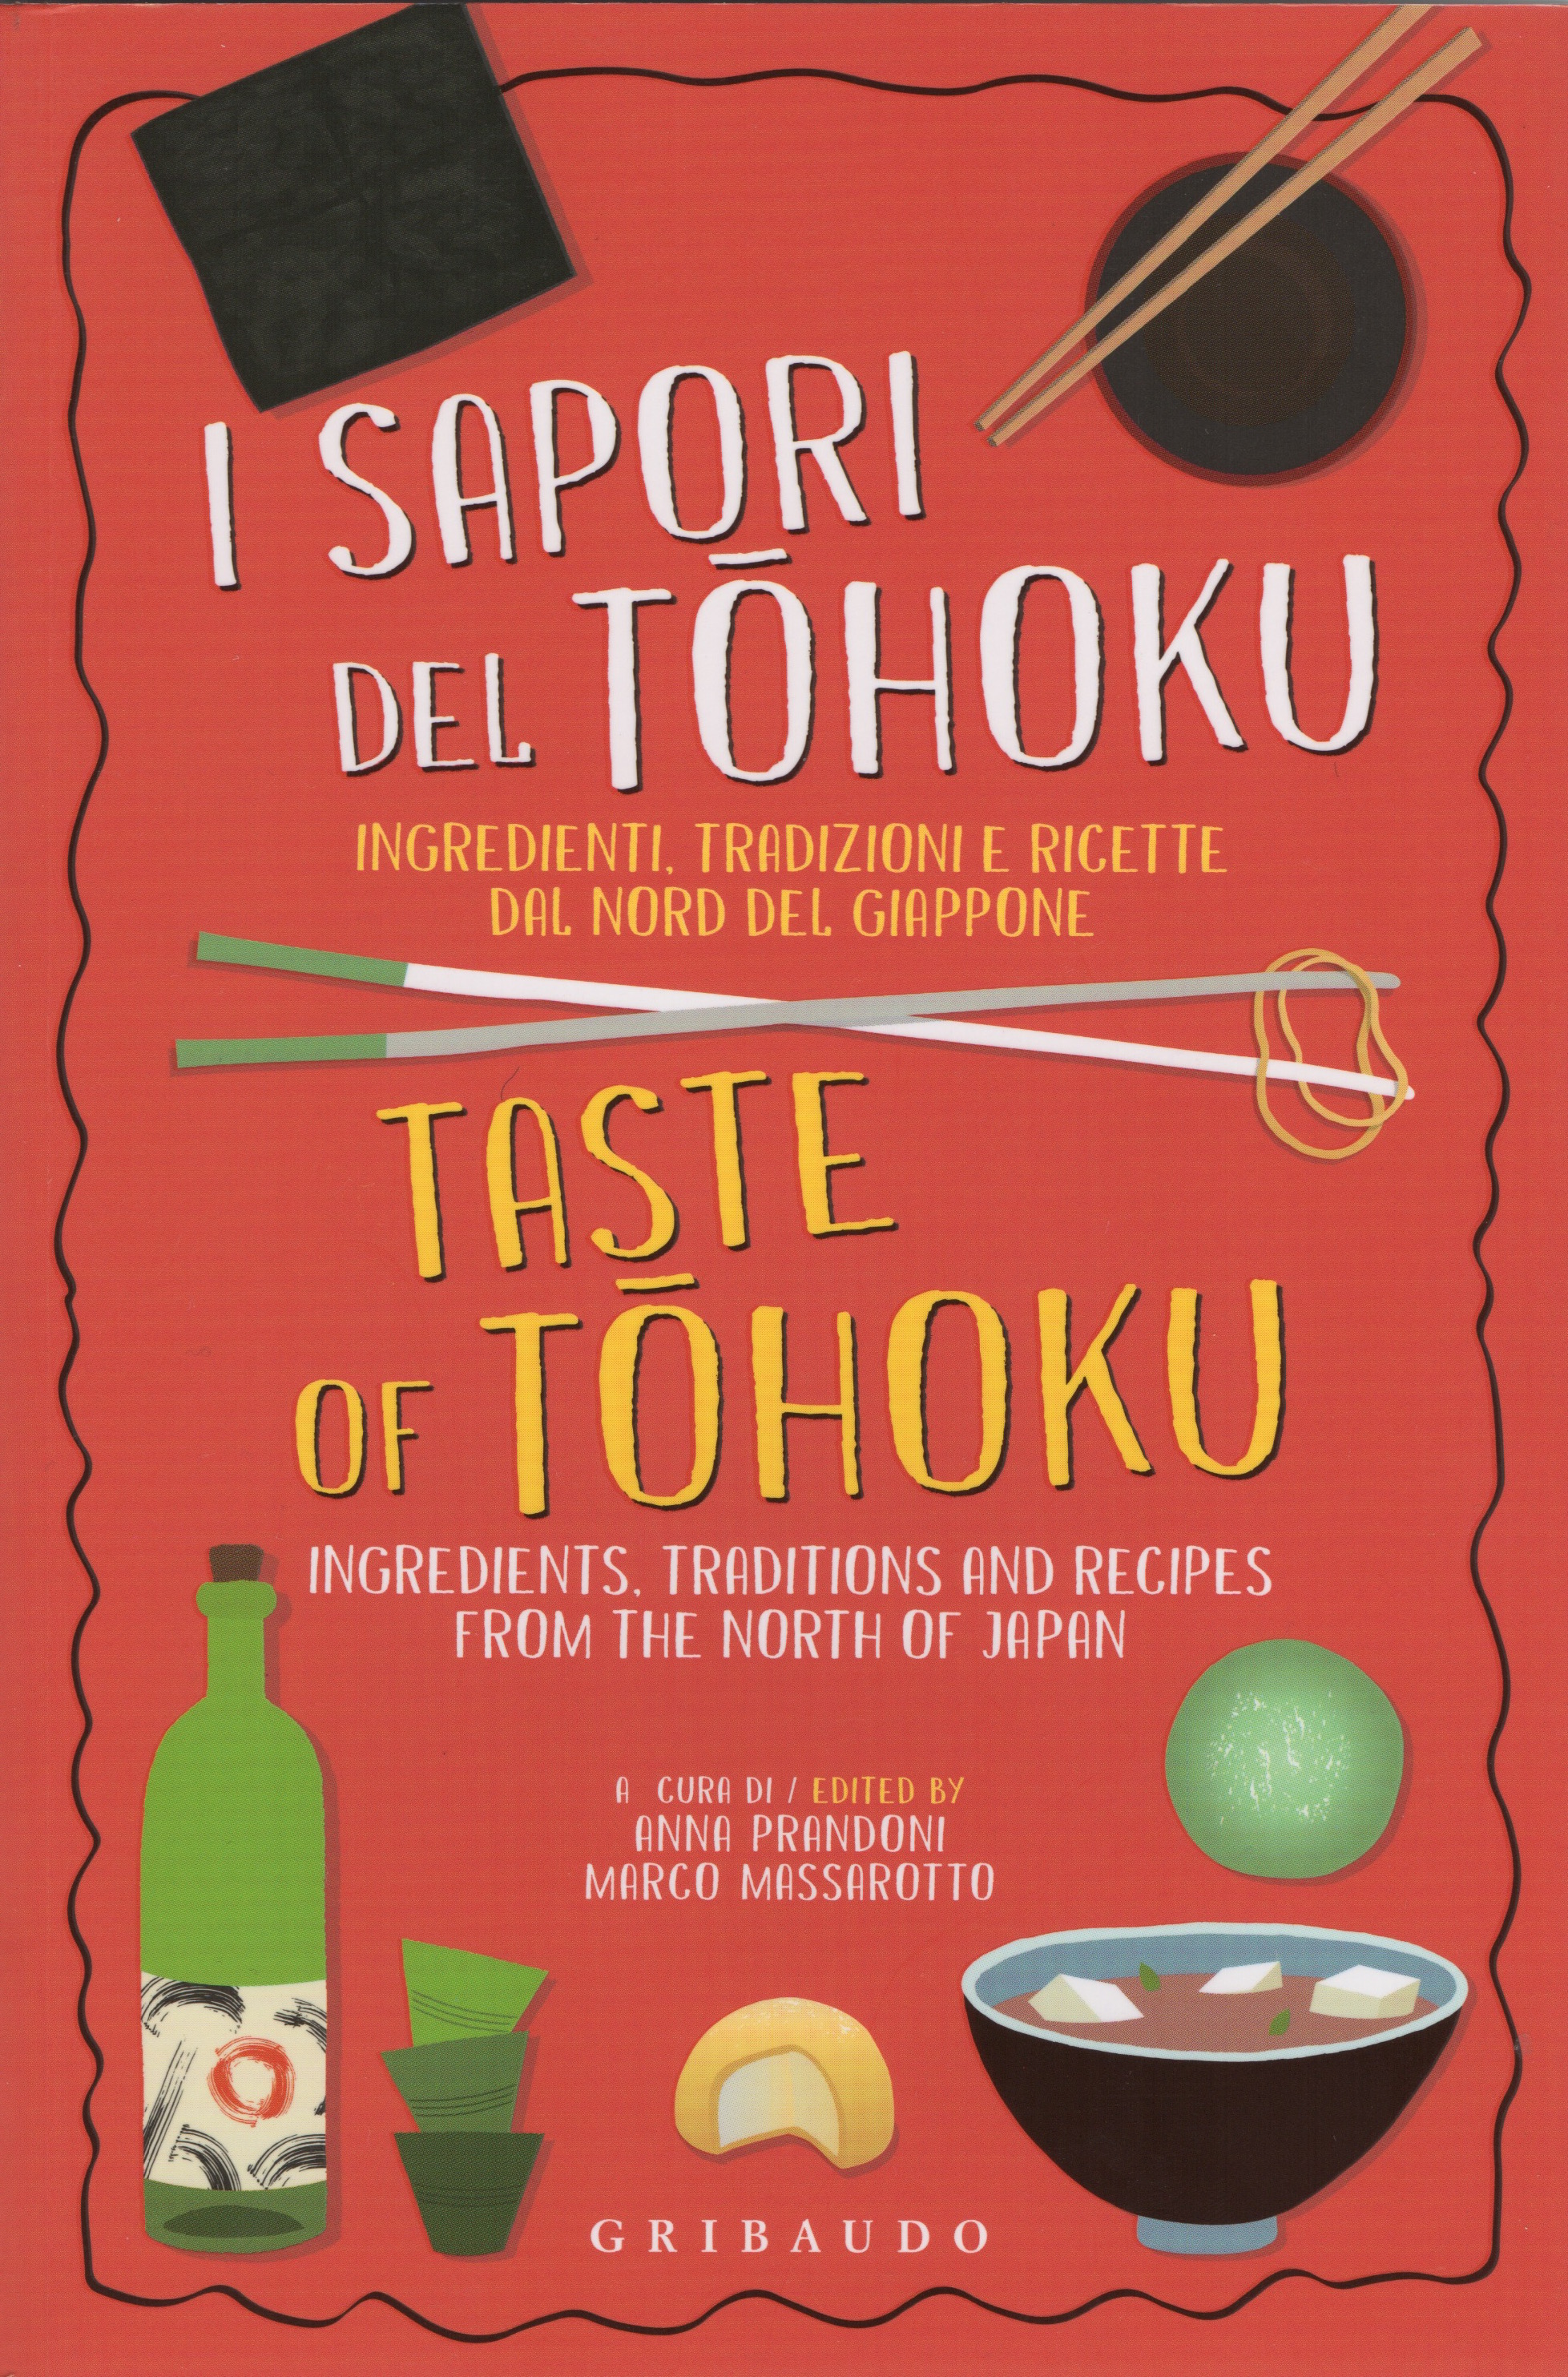 Taste of Tohoku, 2016